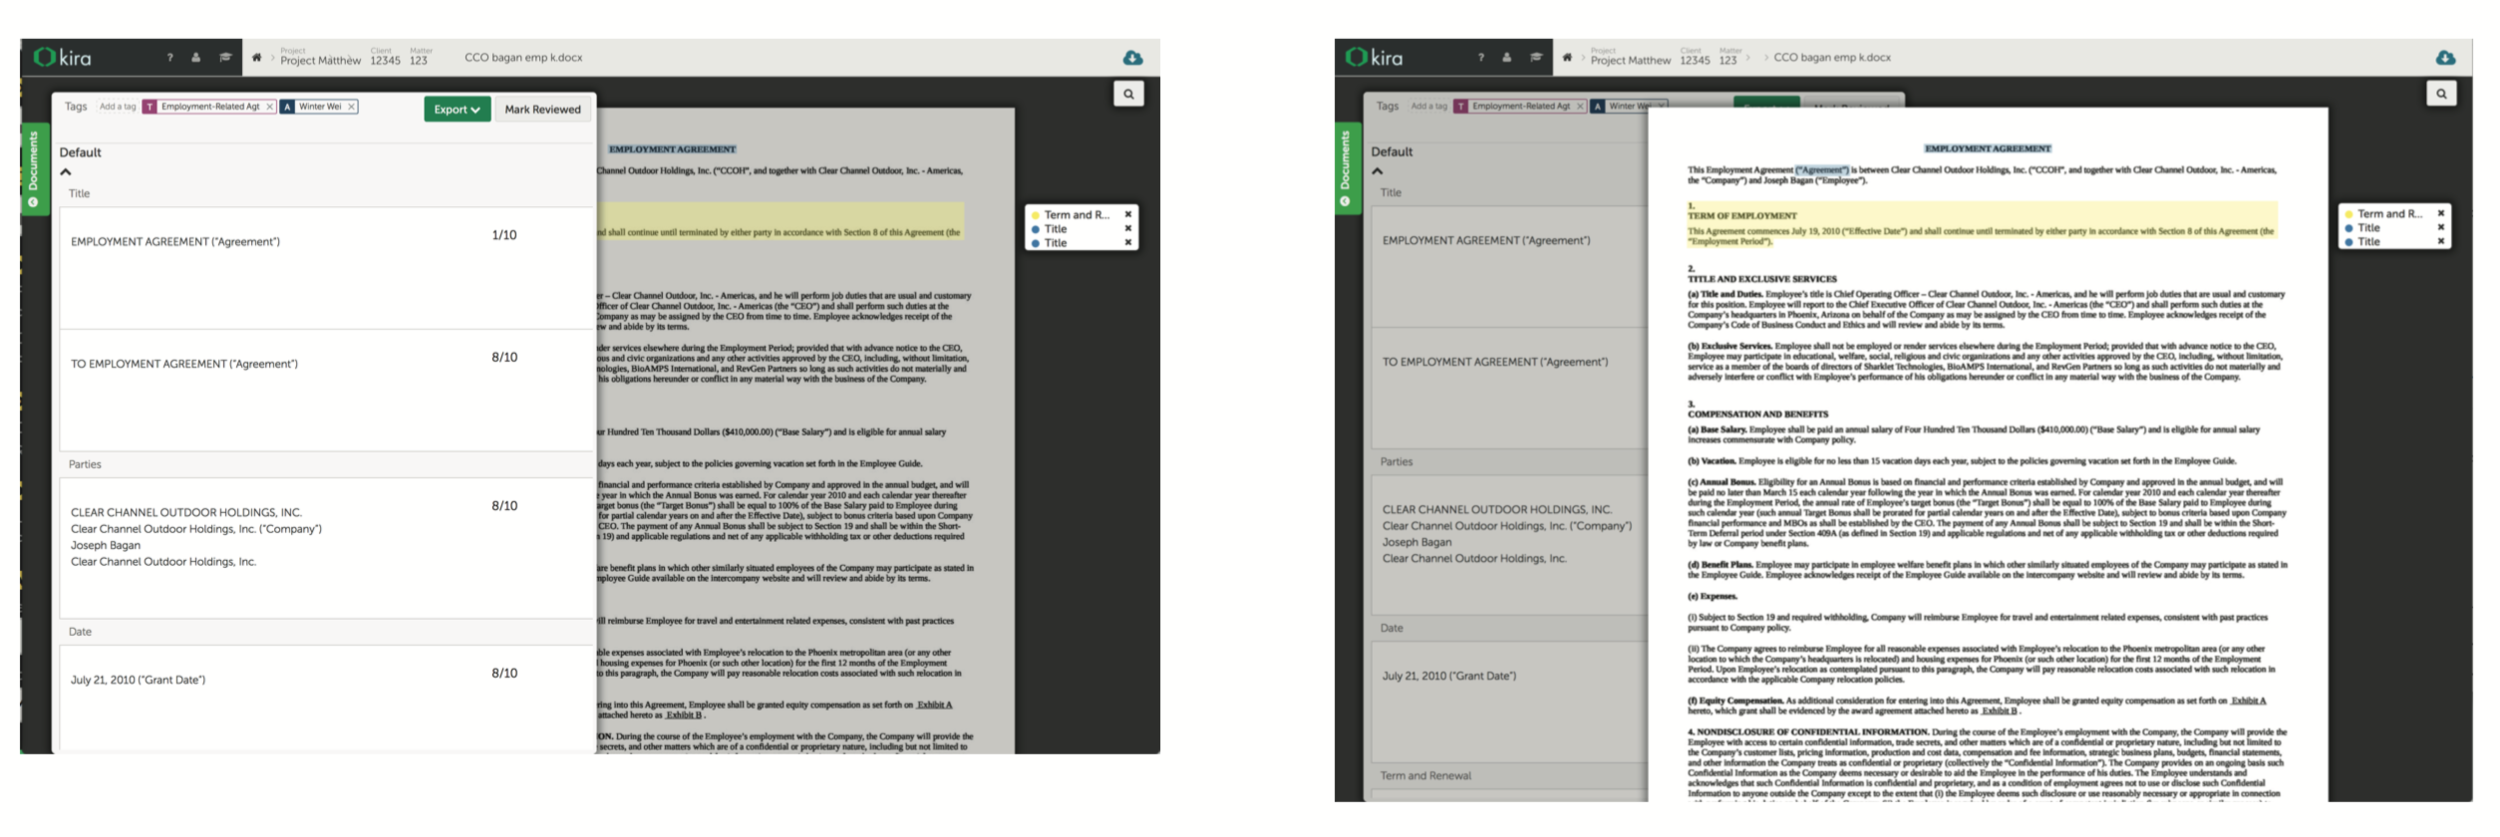 The previous version of document viewer, where the document and summary pane overlay on top of each other as a solution to responsiveness. This creates some usability and aesthetic issues.